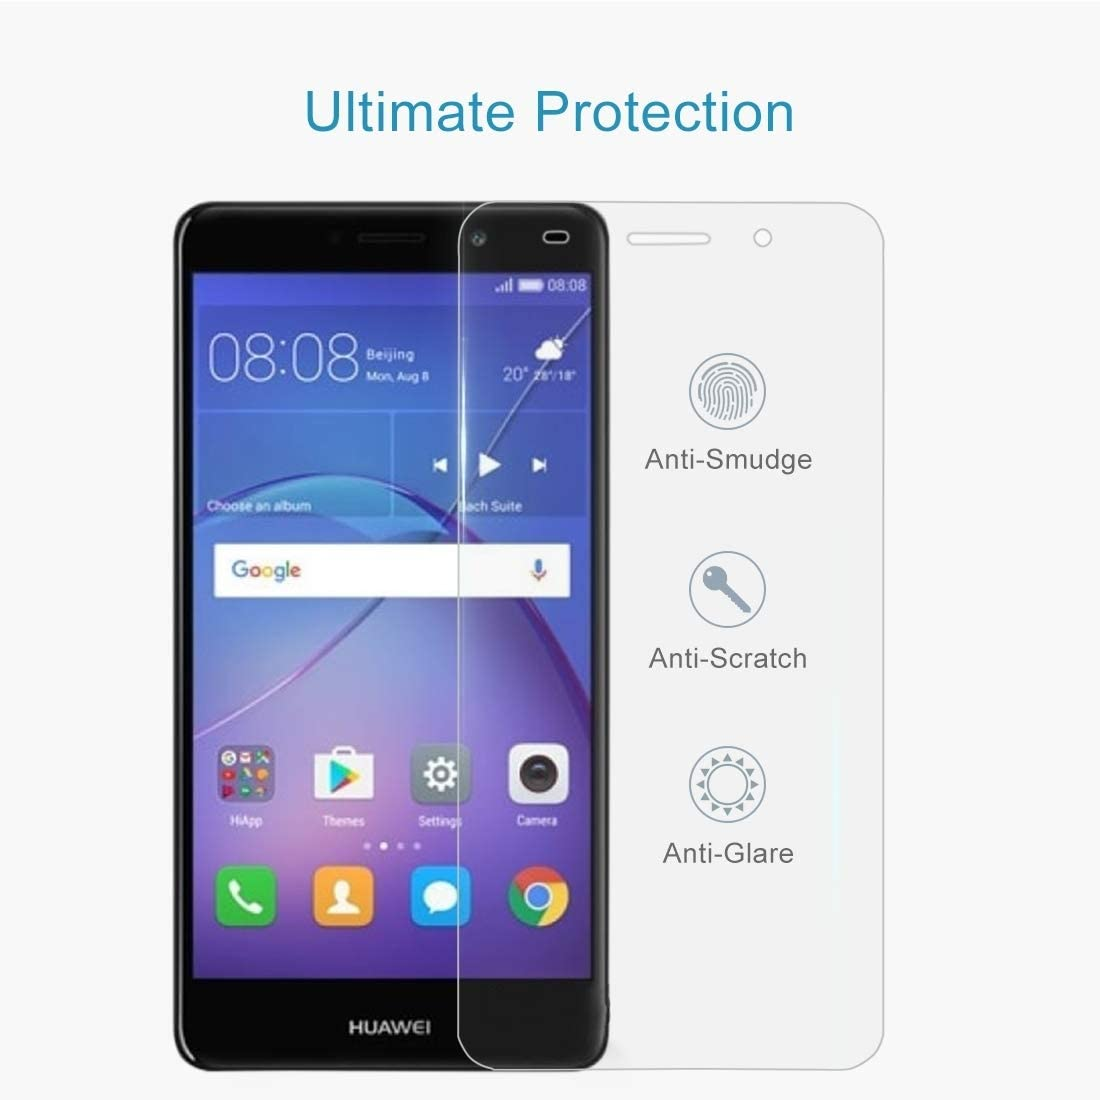 Wangl Mobile Phone Tempered Glass Film 100 PCS for Huawei Y3 2017 0.3mm 9H Surface Hardness 2.5D Explosion-Proof Full Screen Tempered Glass Screen Film Tempered Glass Film